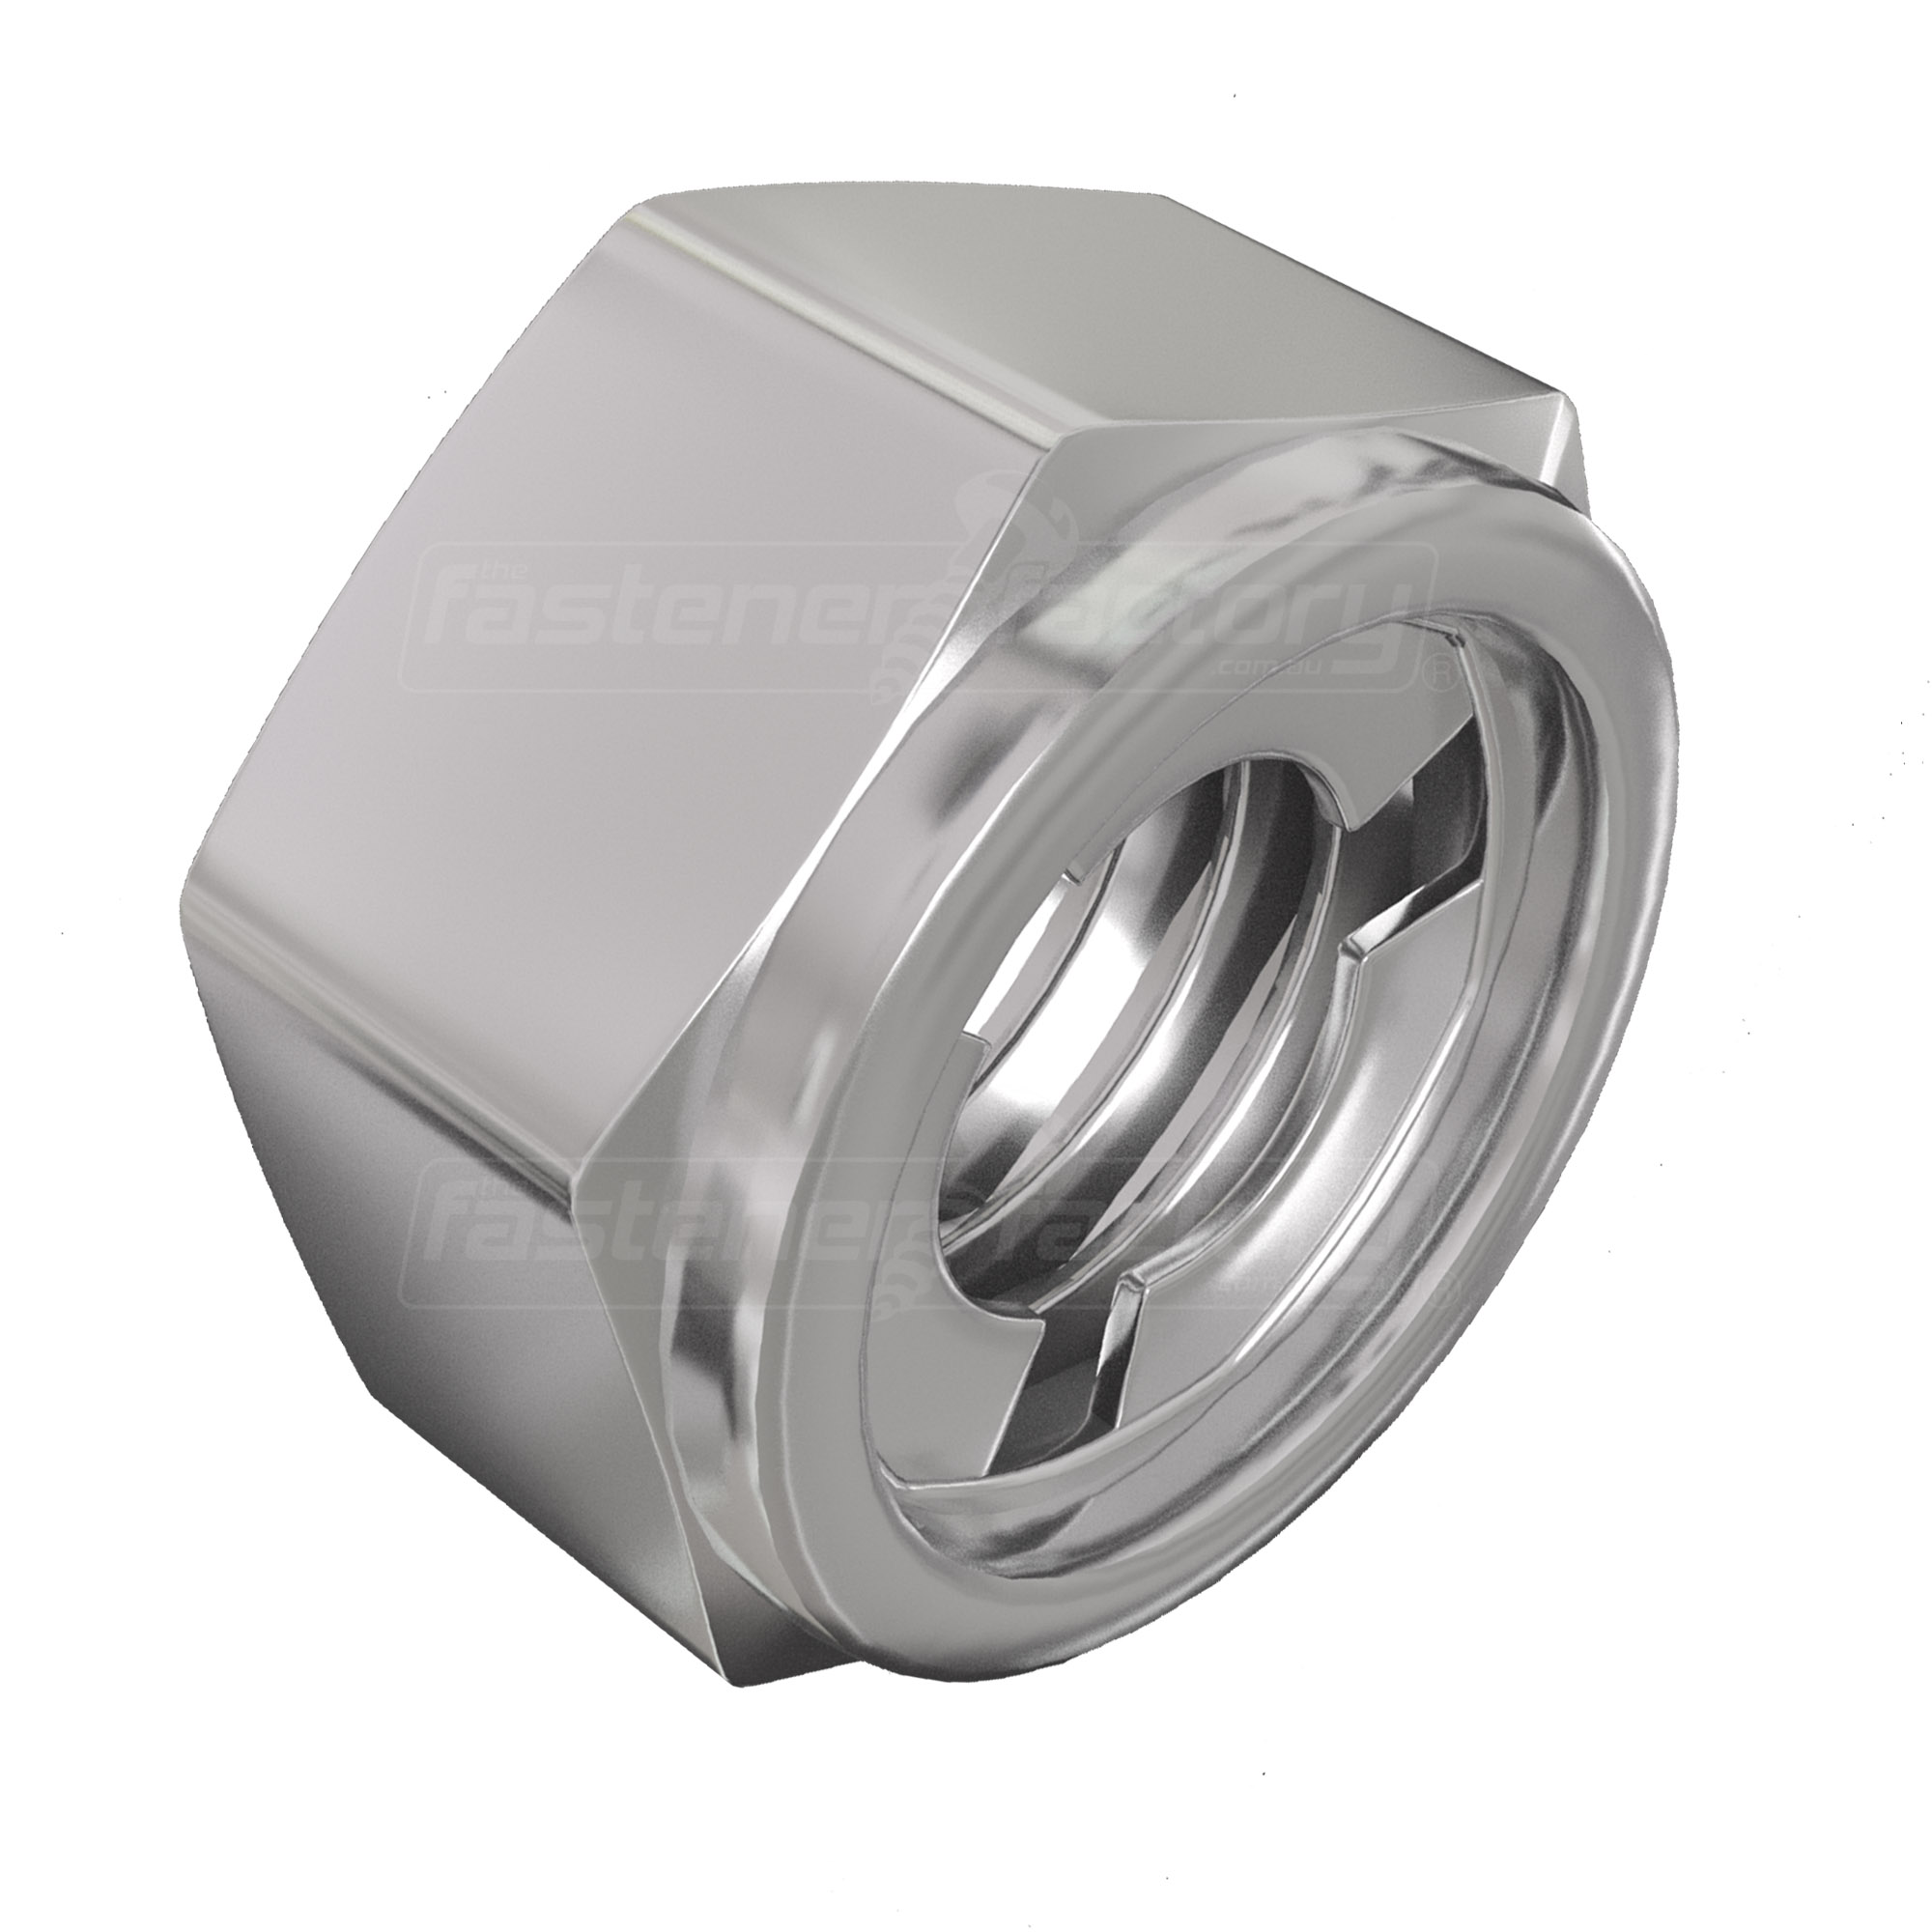 Stainless Hex Coupling Nut - All Stainless Nuts - Nuts & Bolts